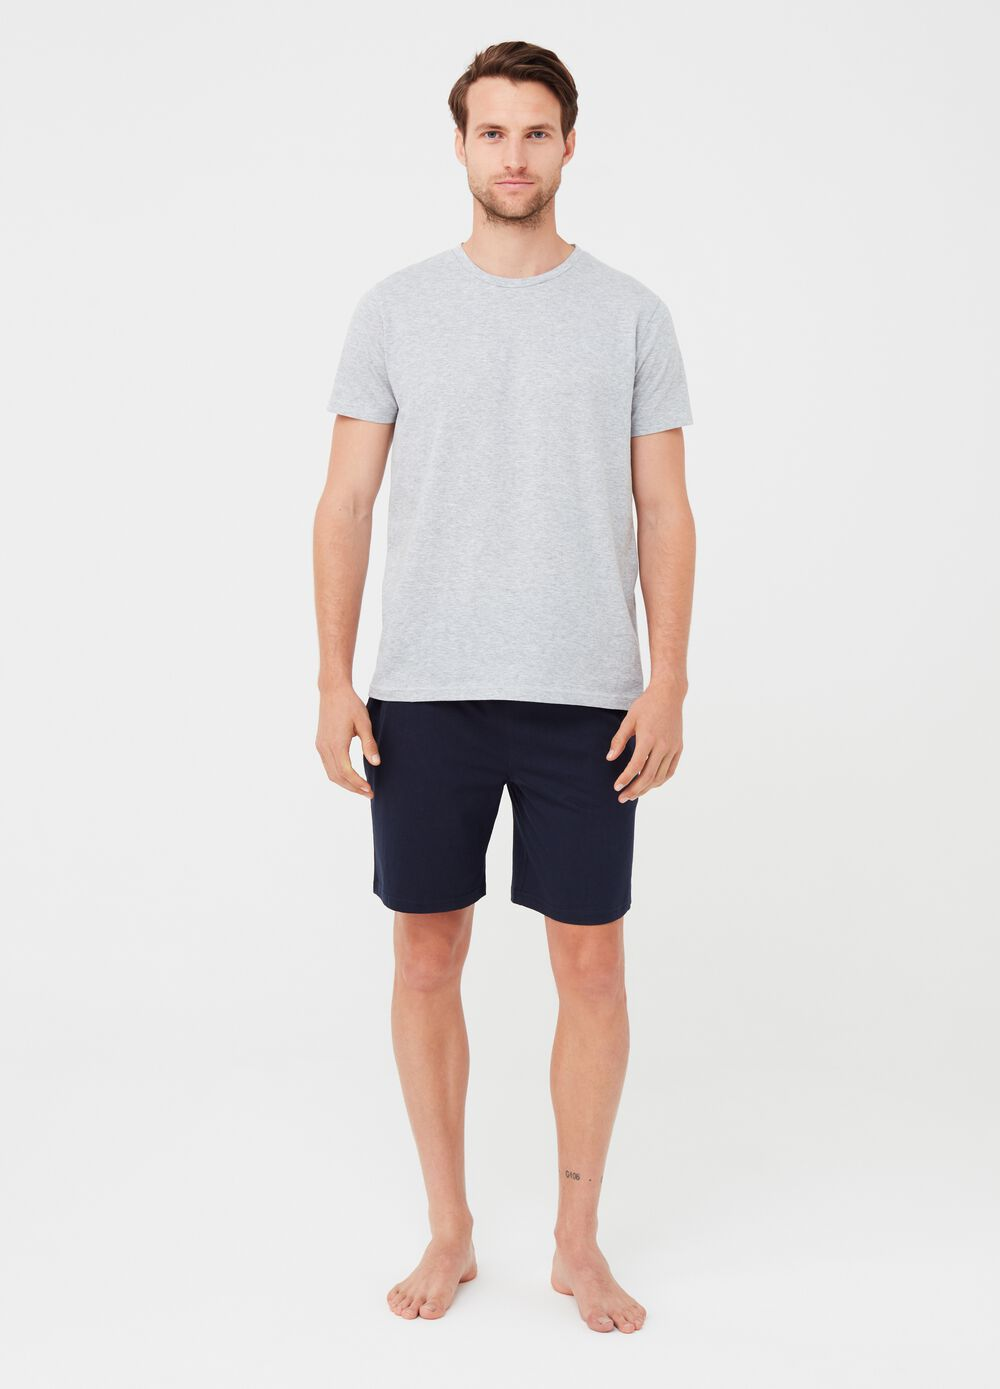 Bermuda shorts and T-shirt pyjamas with round neckline